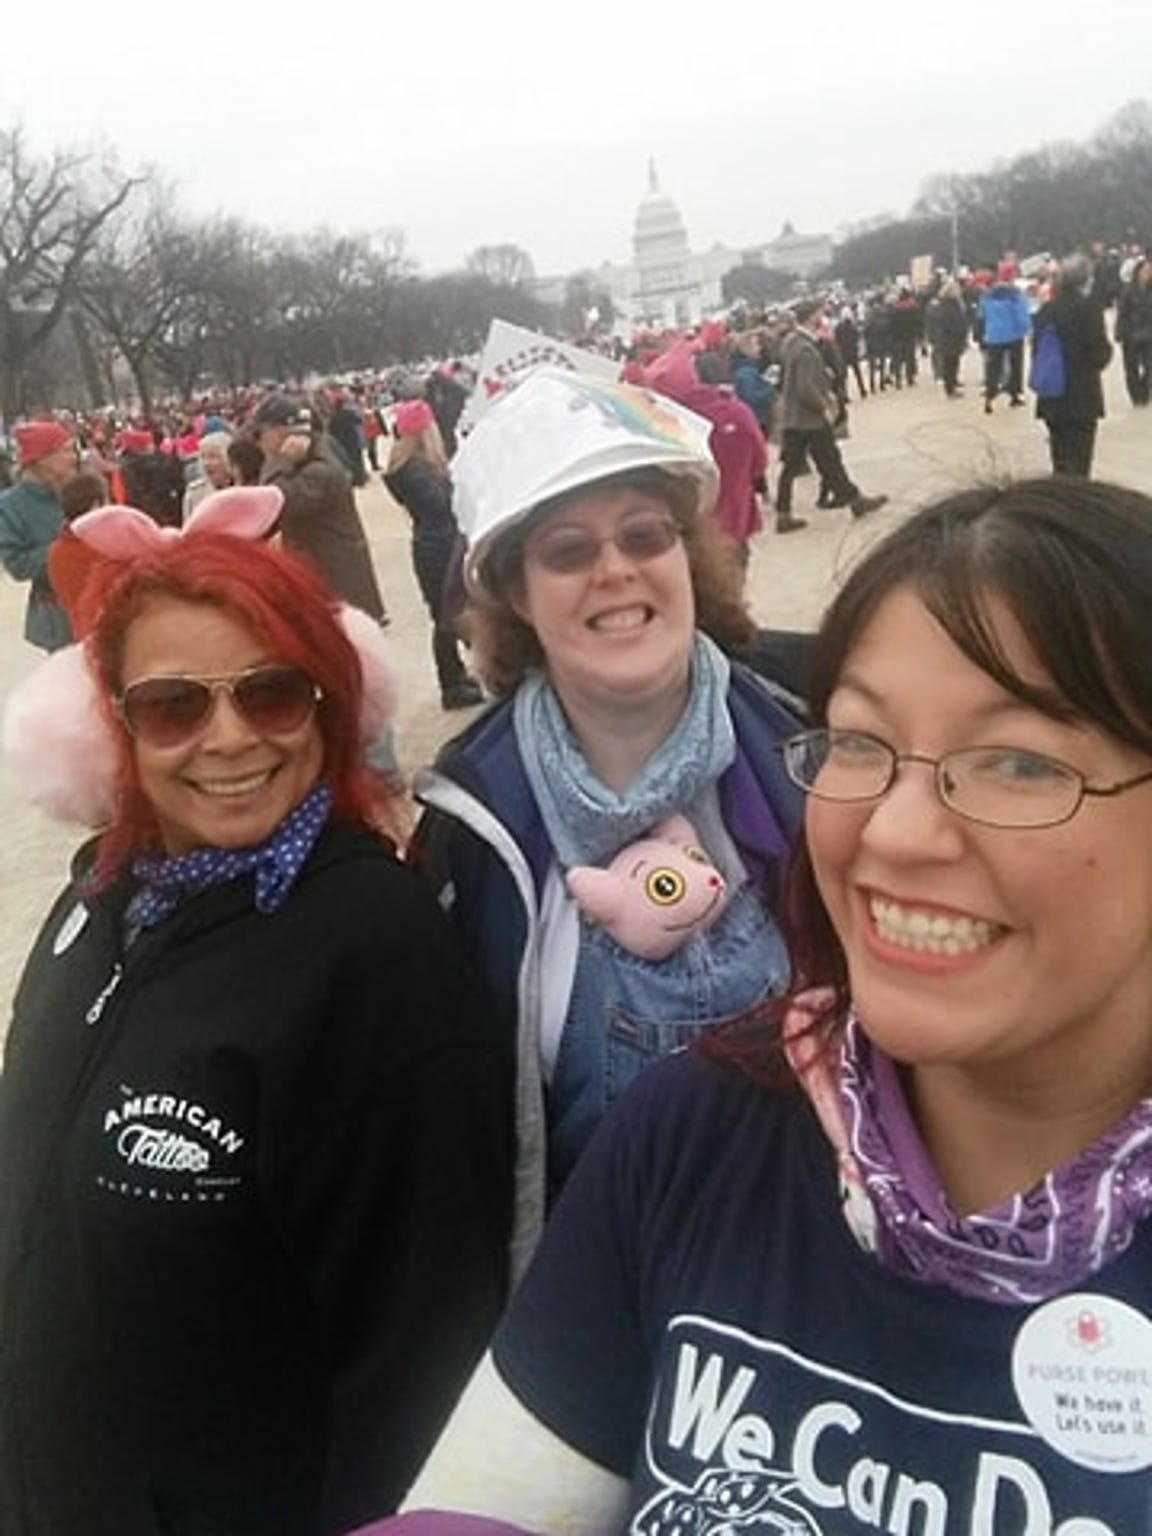 Haidi Hong (far right) attends the Women's March in